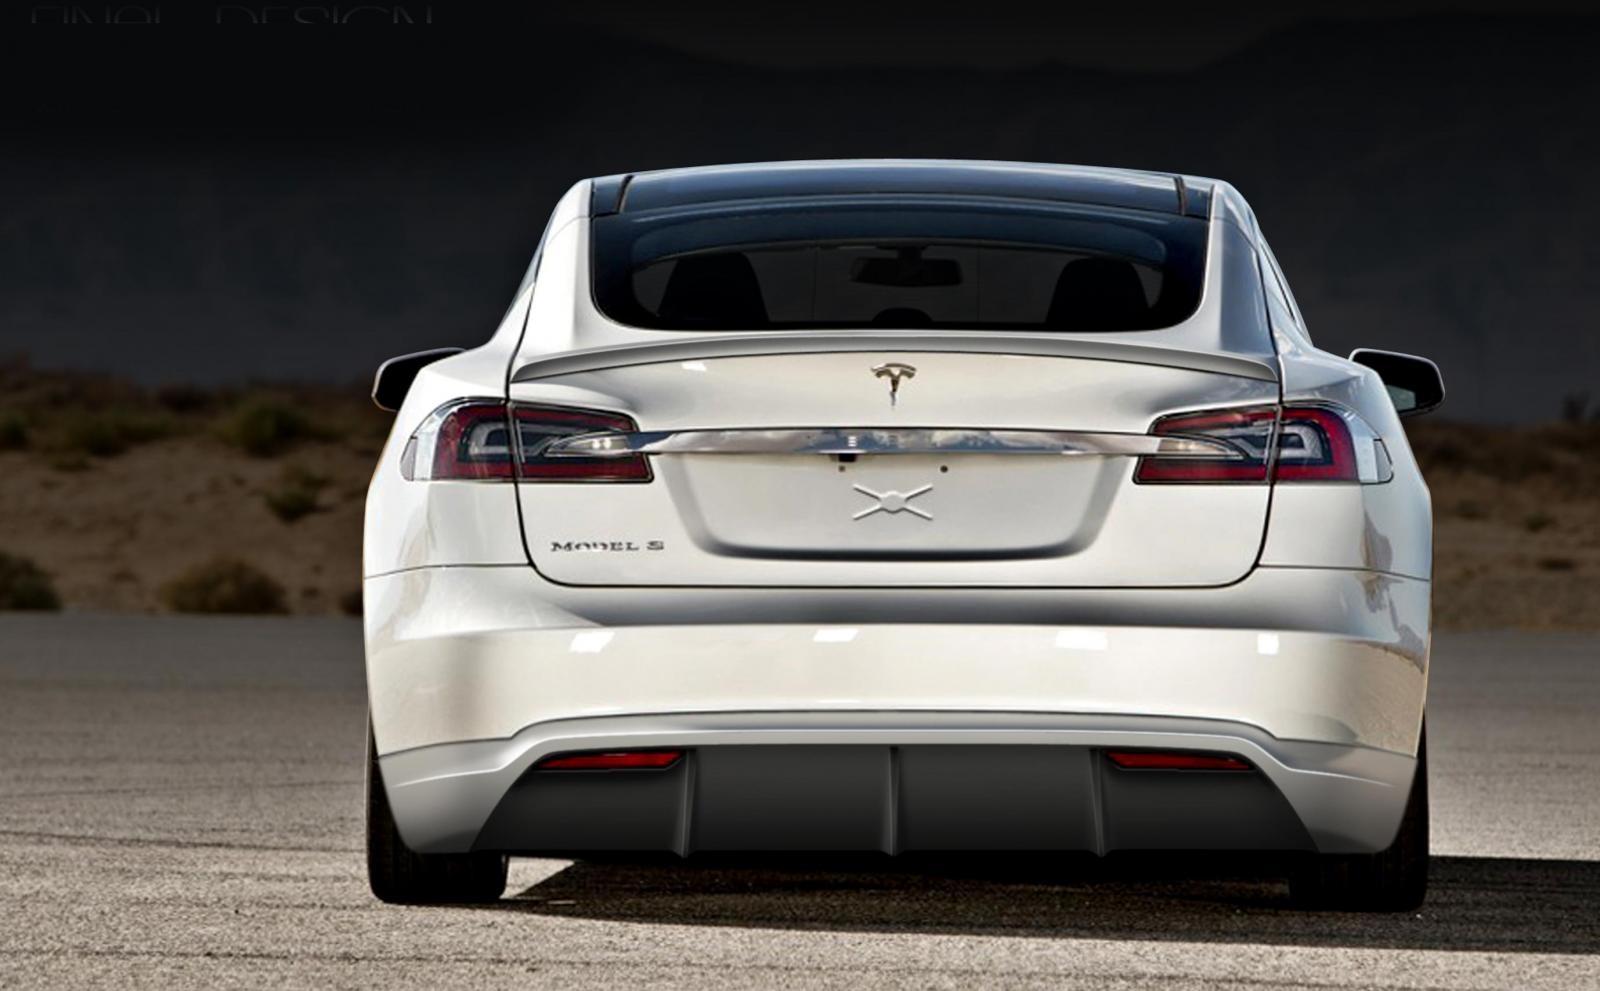 http://www.automobilesreview.com/img/unplugged-performance-tesla-model-s/unplugged-performance-tesla-model-s-05.jpg